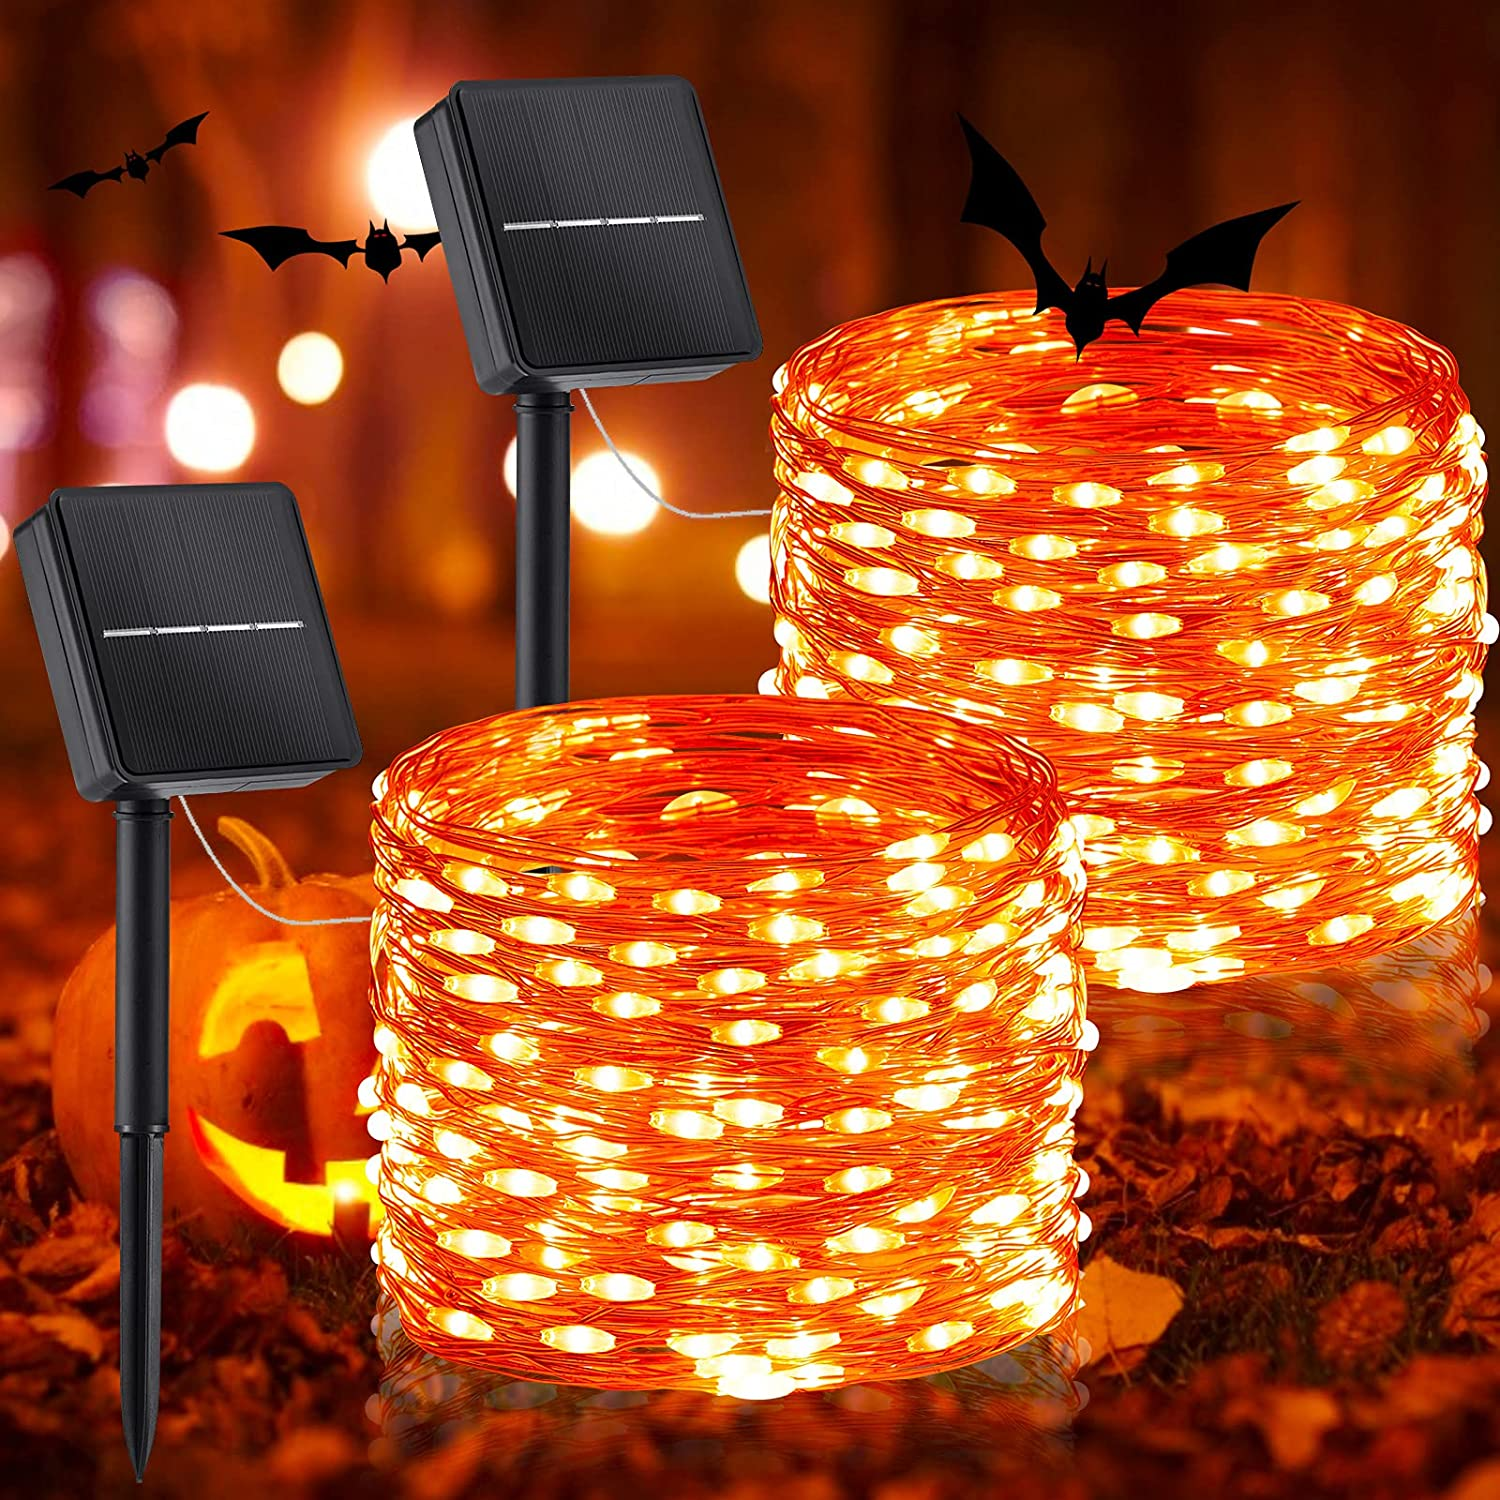 Outdoor Solar Halloween String Lights, 2 Pack 33 Feet 100 Led Solar Powered Fairy Lights with 8 Modes Waterproof Decoration Copper Wire Lights for Patio Yard Trees Christmas Wedding Party (Orange)